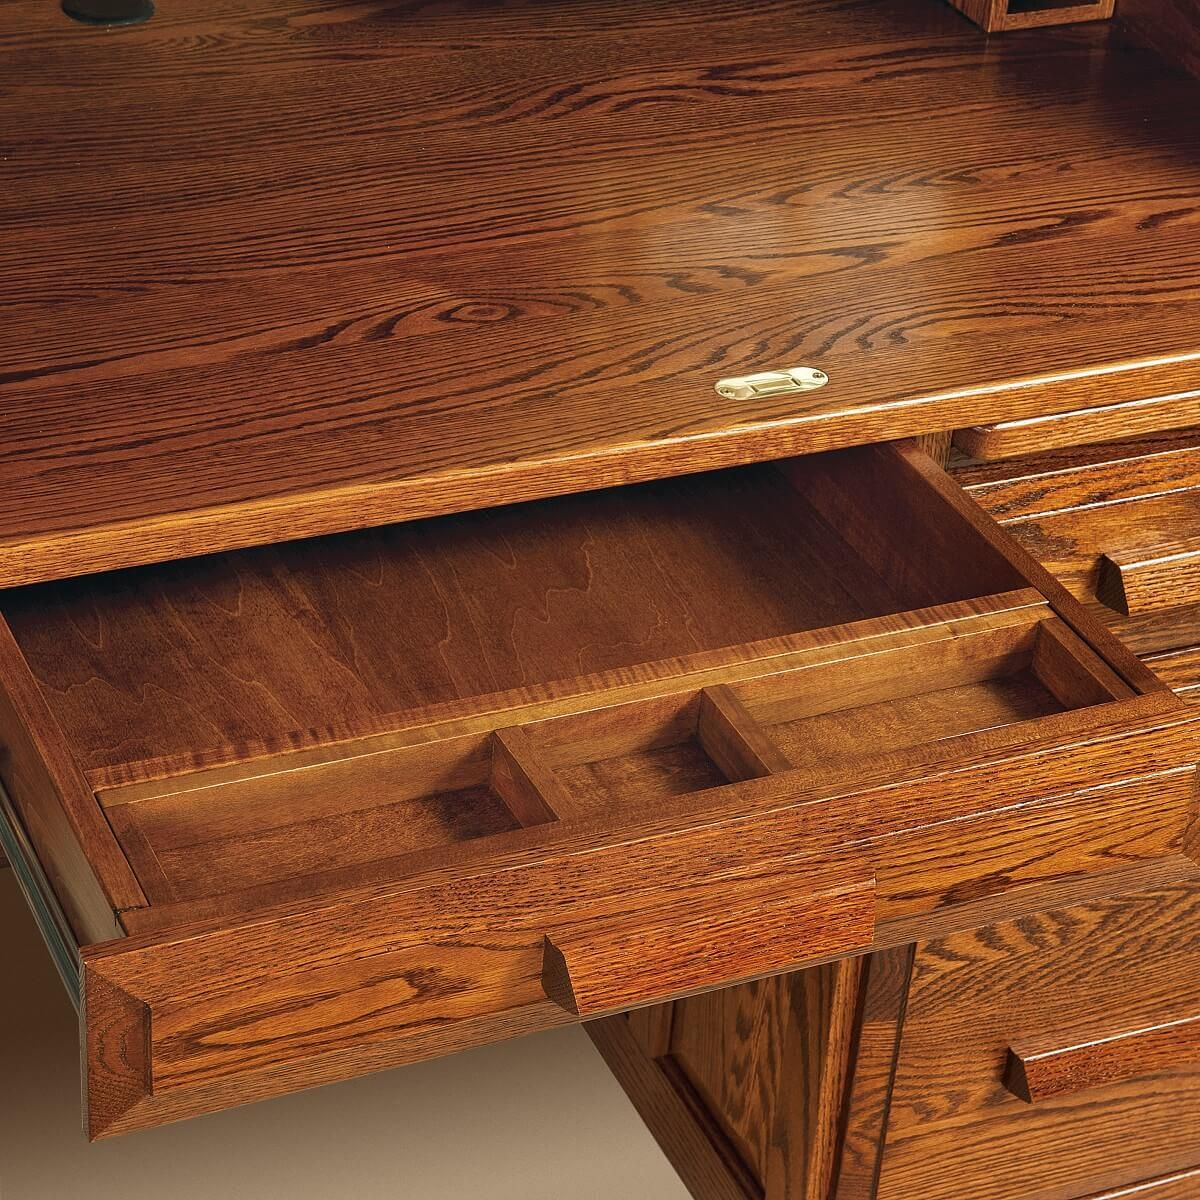 Pencil Tray in Lap Drawer